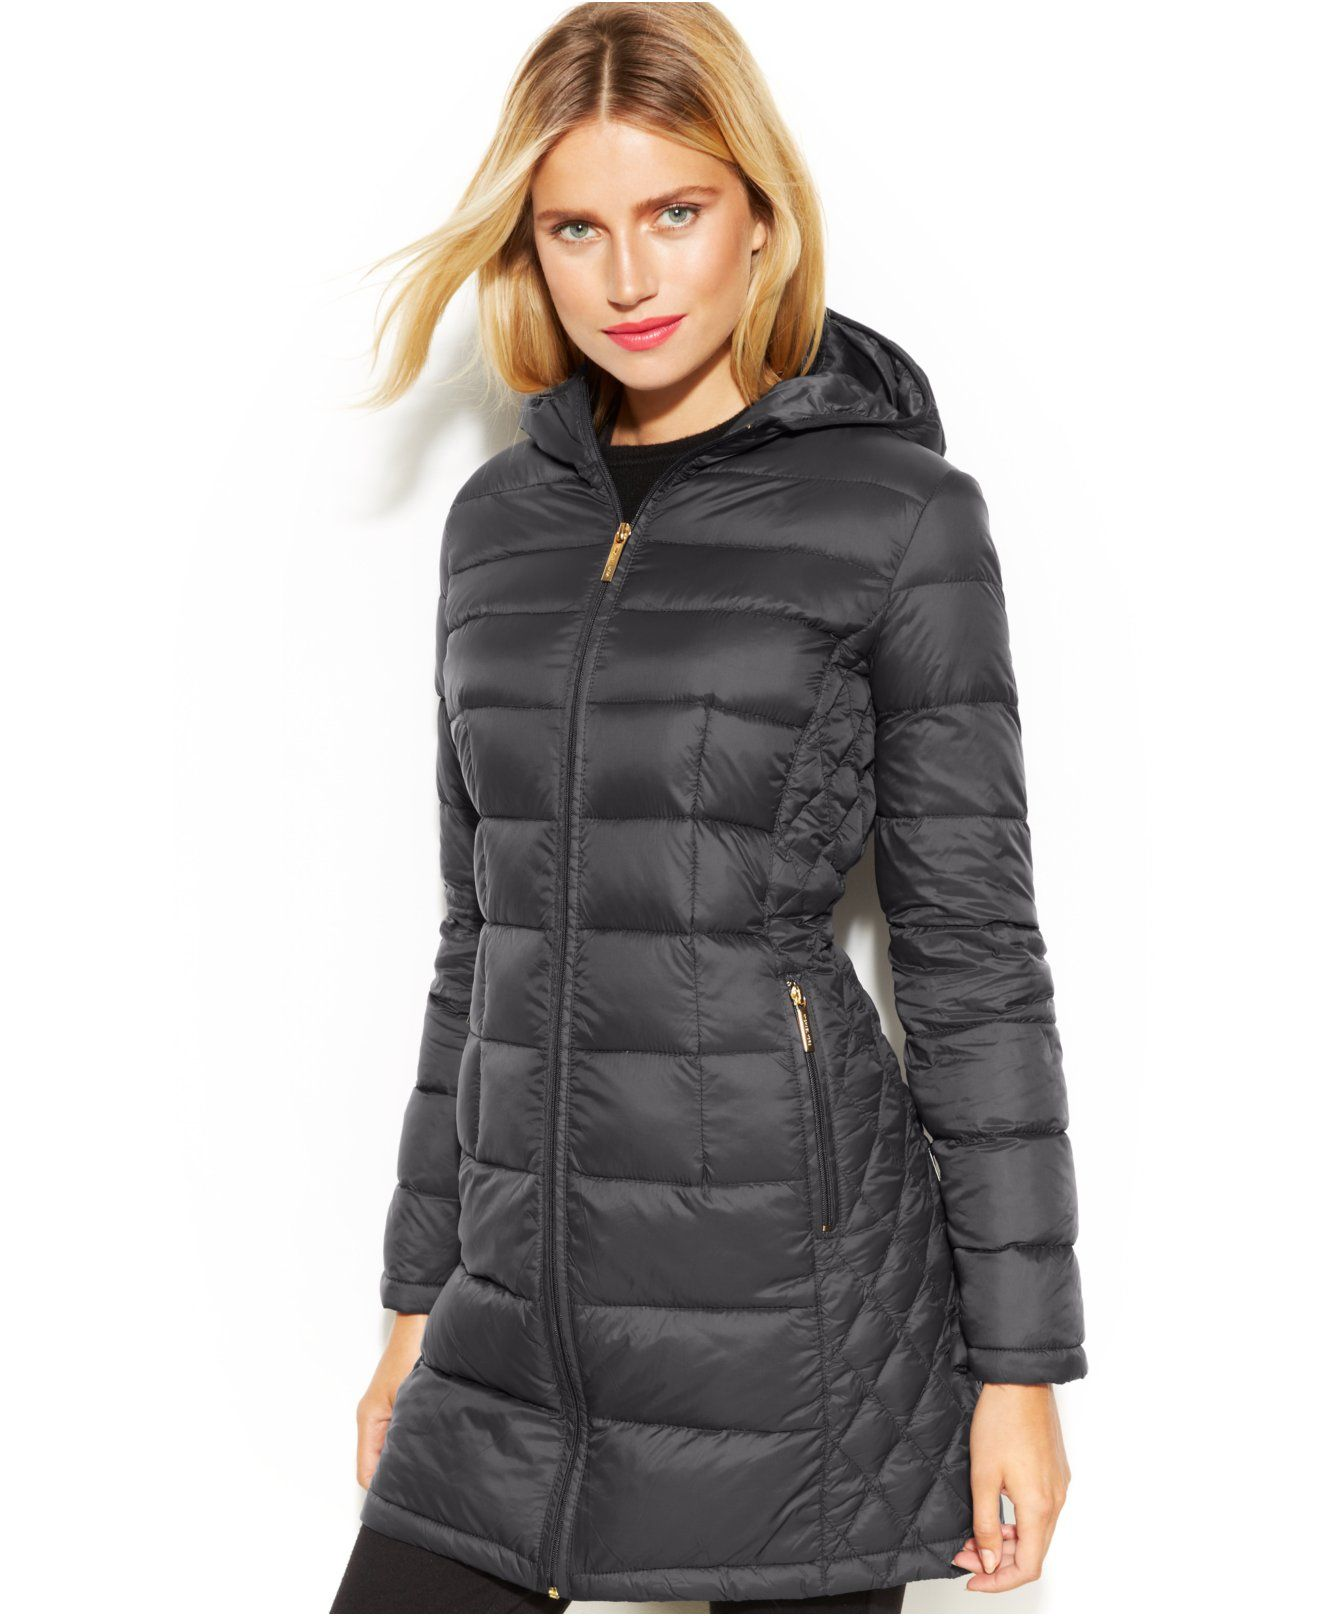 55811fac4e7d MICHAEL Michael Kors Petite Quilted Down Packable Puffer Coat - Coats -  Women - Macy's